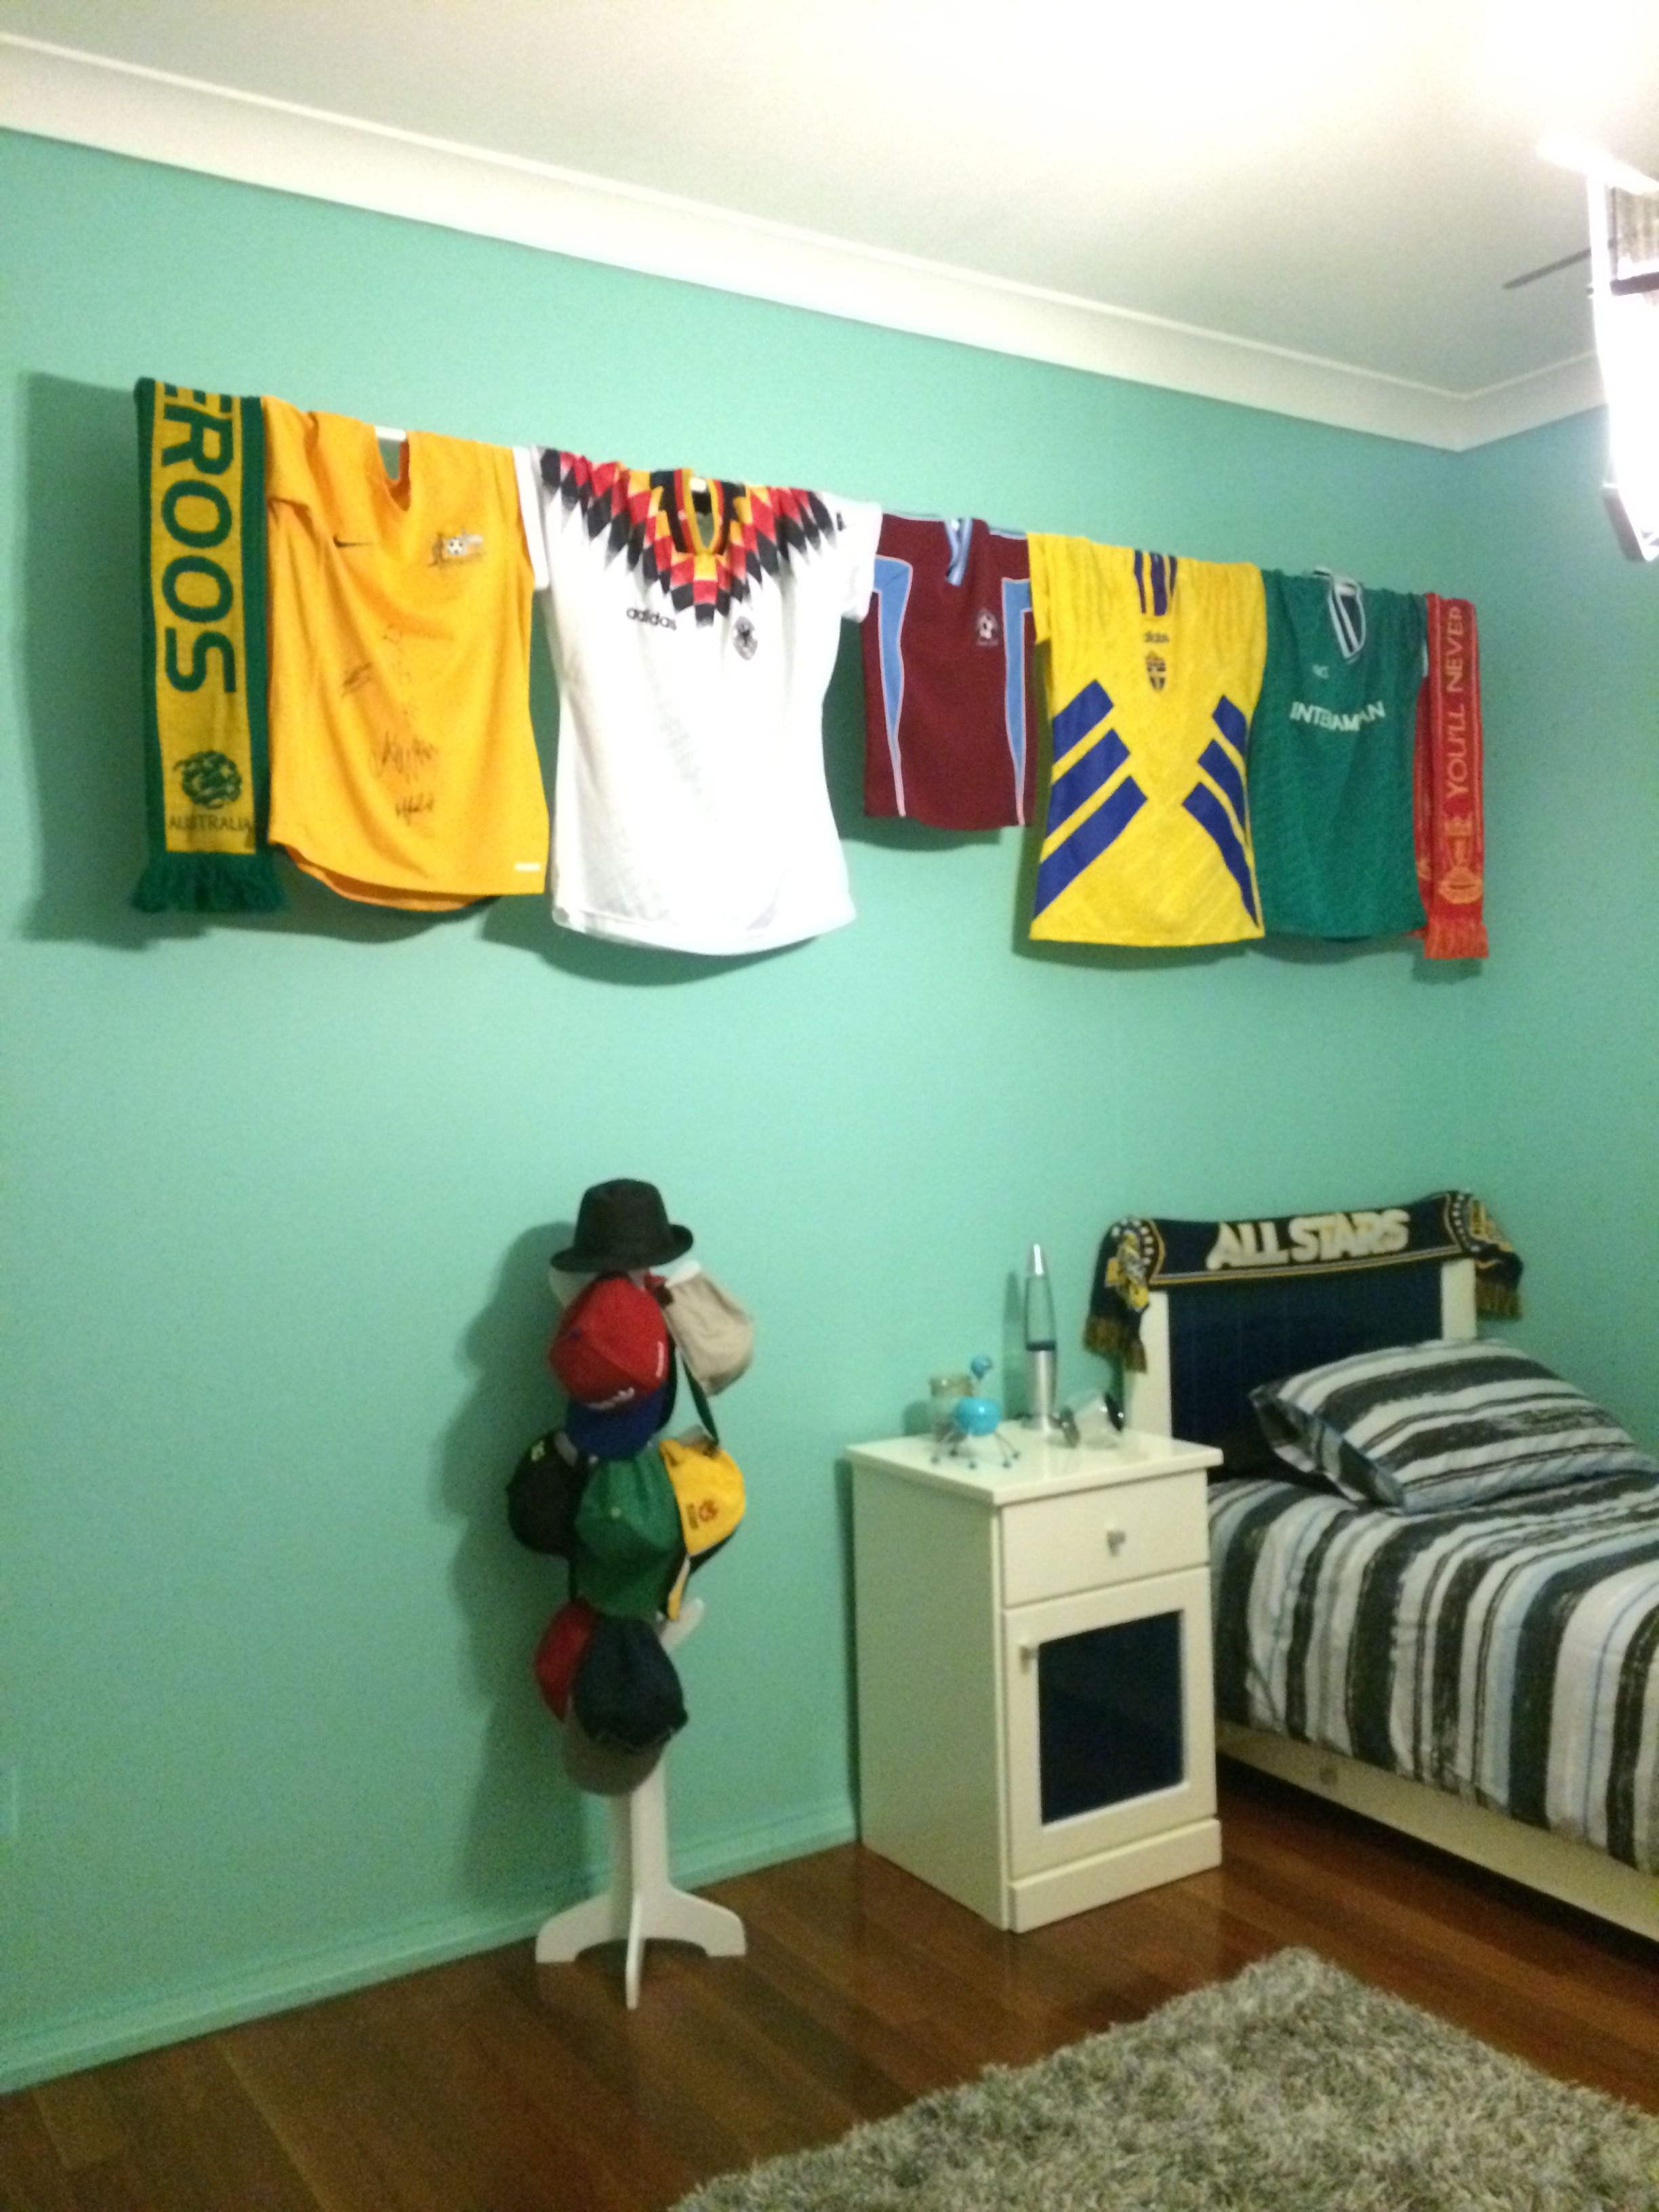 Boys soccer bedroom ideas - 17 Best Ideas About Boys Soccer Bedroom On Pinterest Soccer Bedroom Soccer Room And Soccer Room Decor